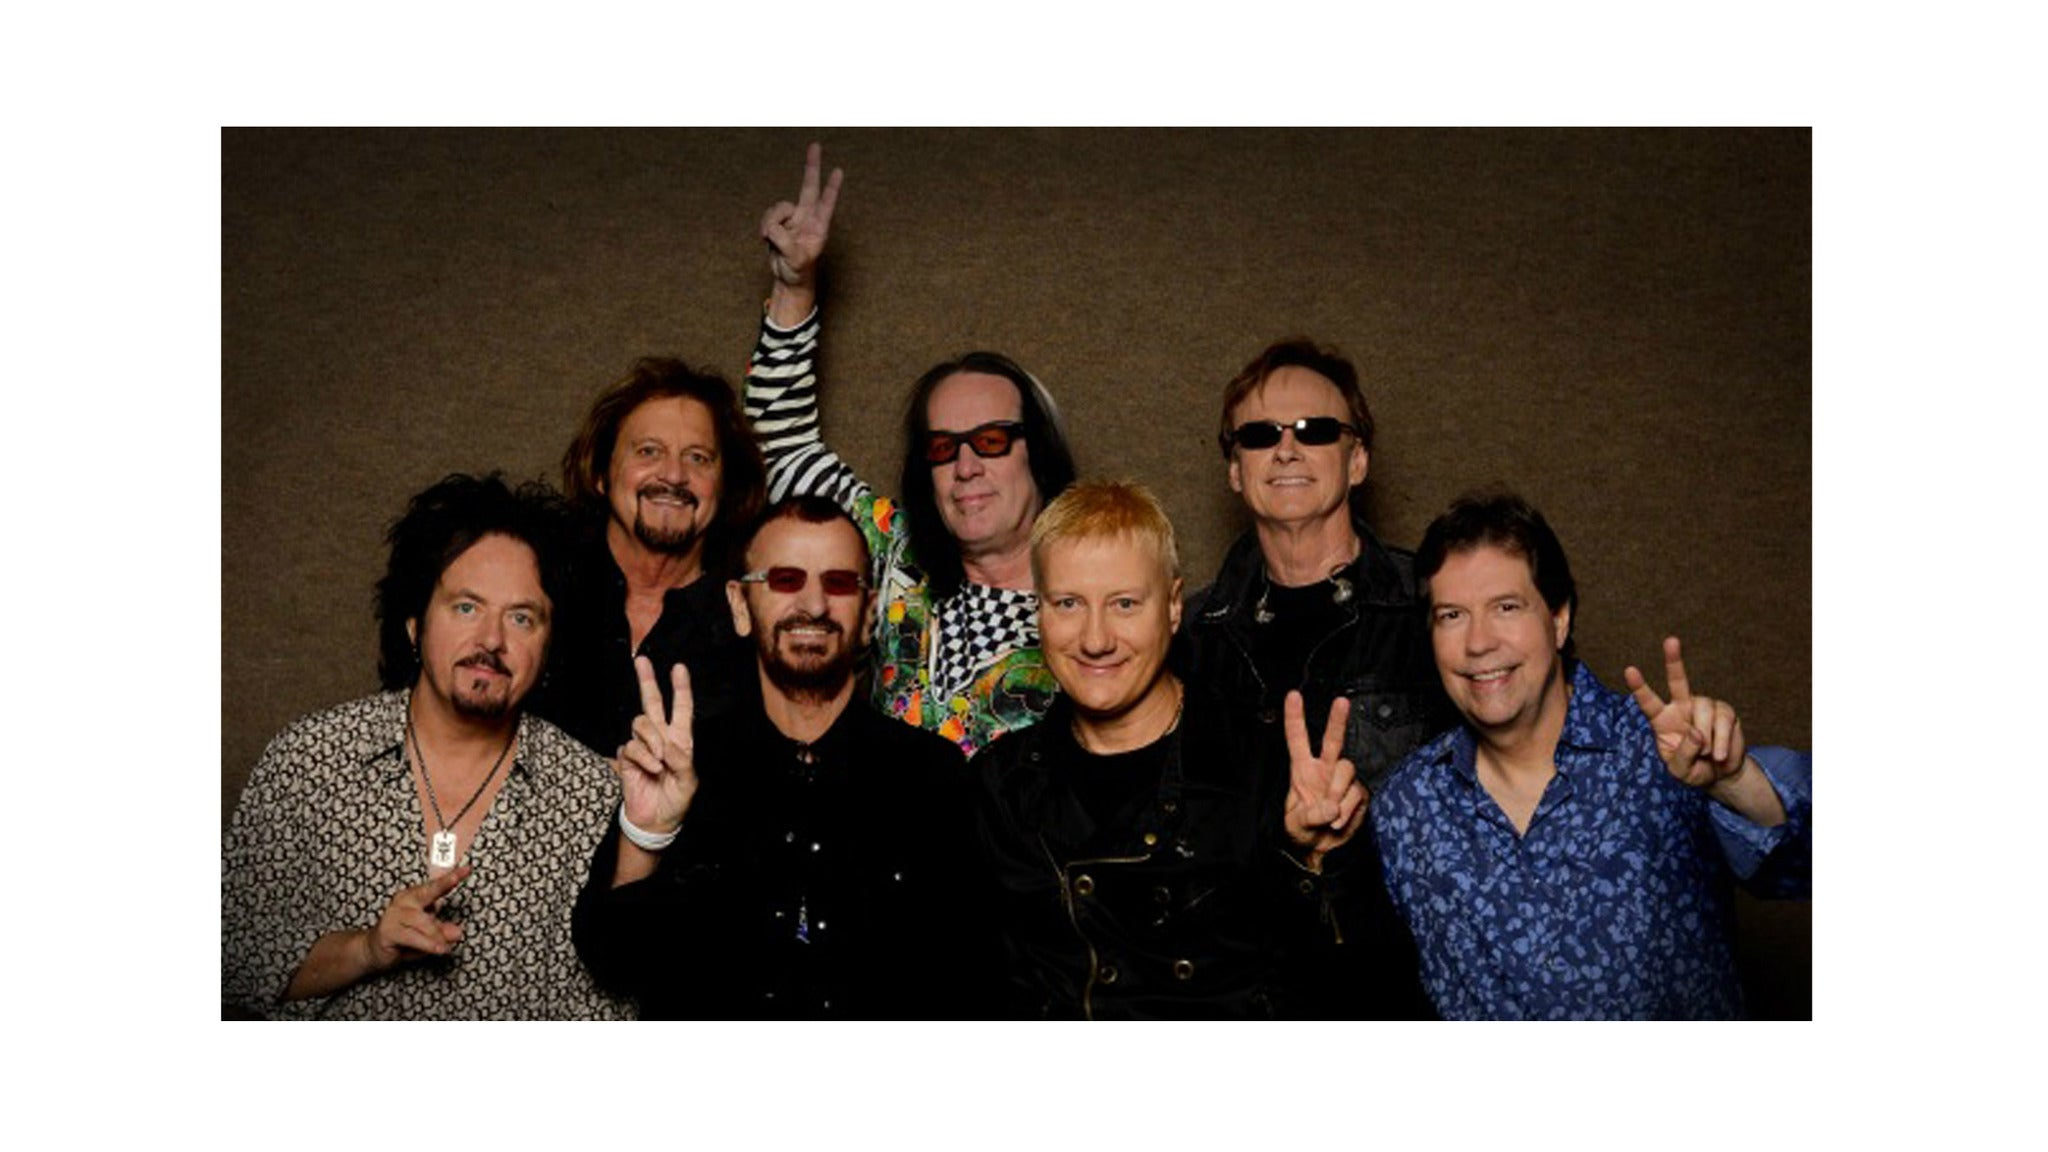 SORRY, THIS EVENT IS NO LONGER ACTIVE<br>Ringo Starr and His All Starr Band at Neal S Blaisdell Arena - Honolulu, HI 96814